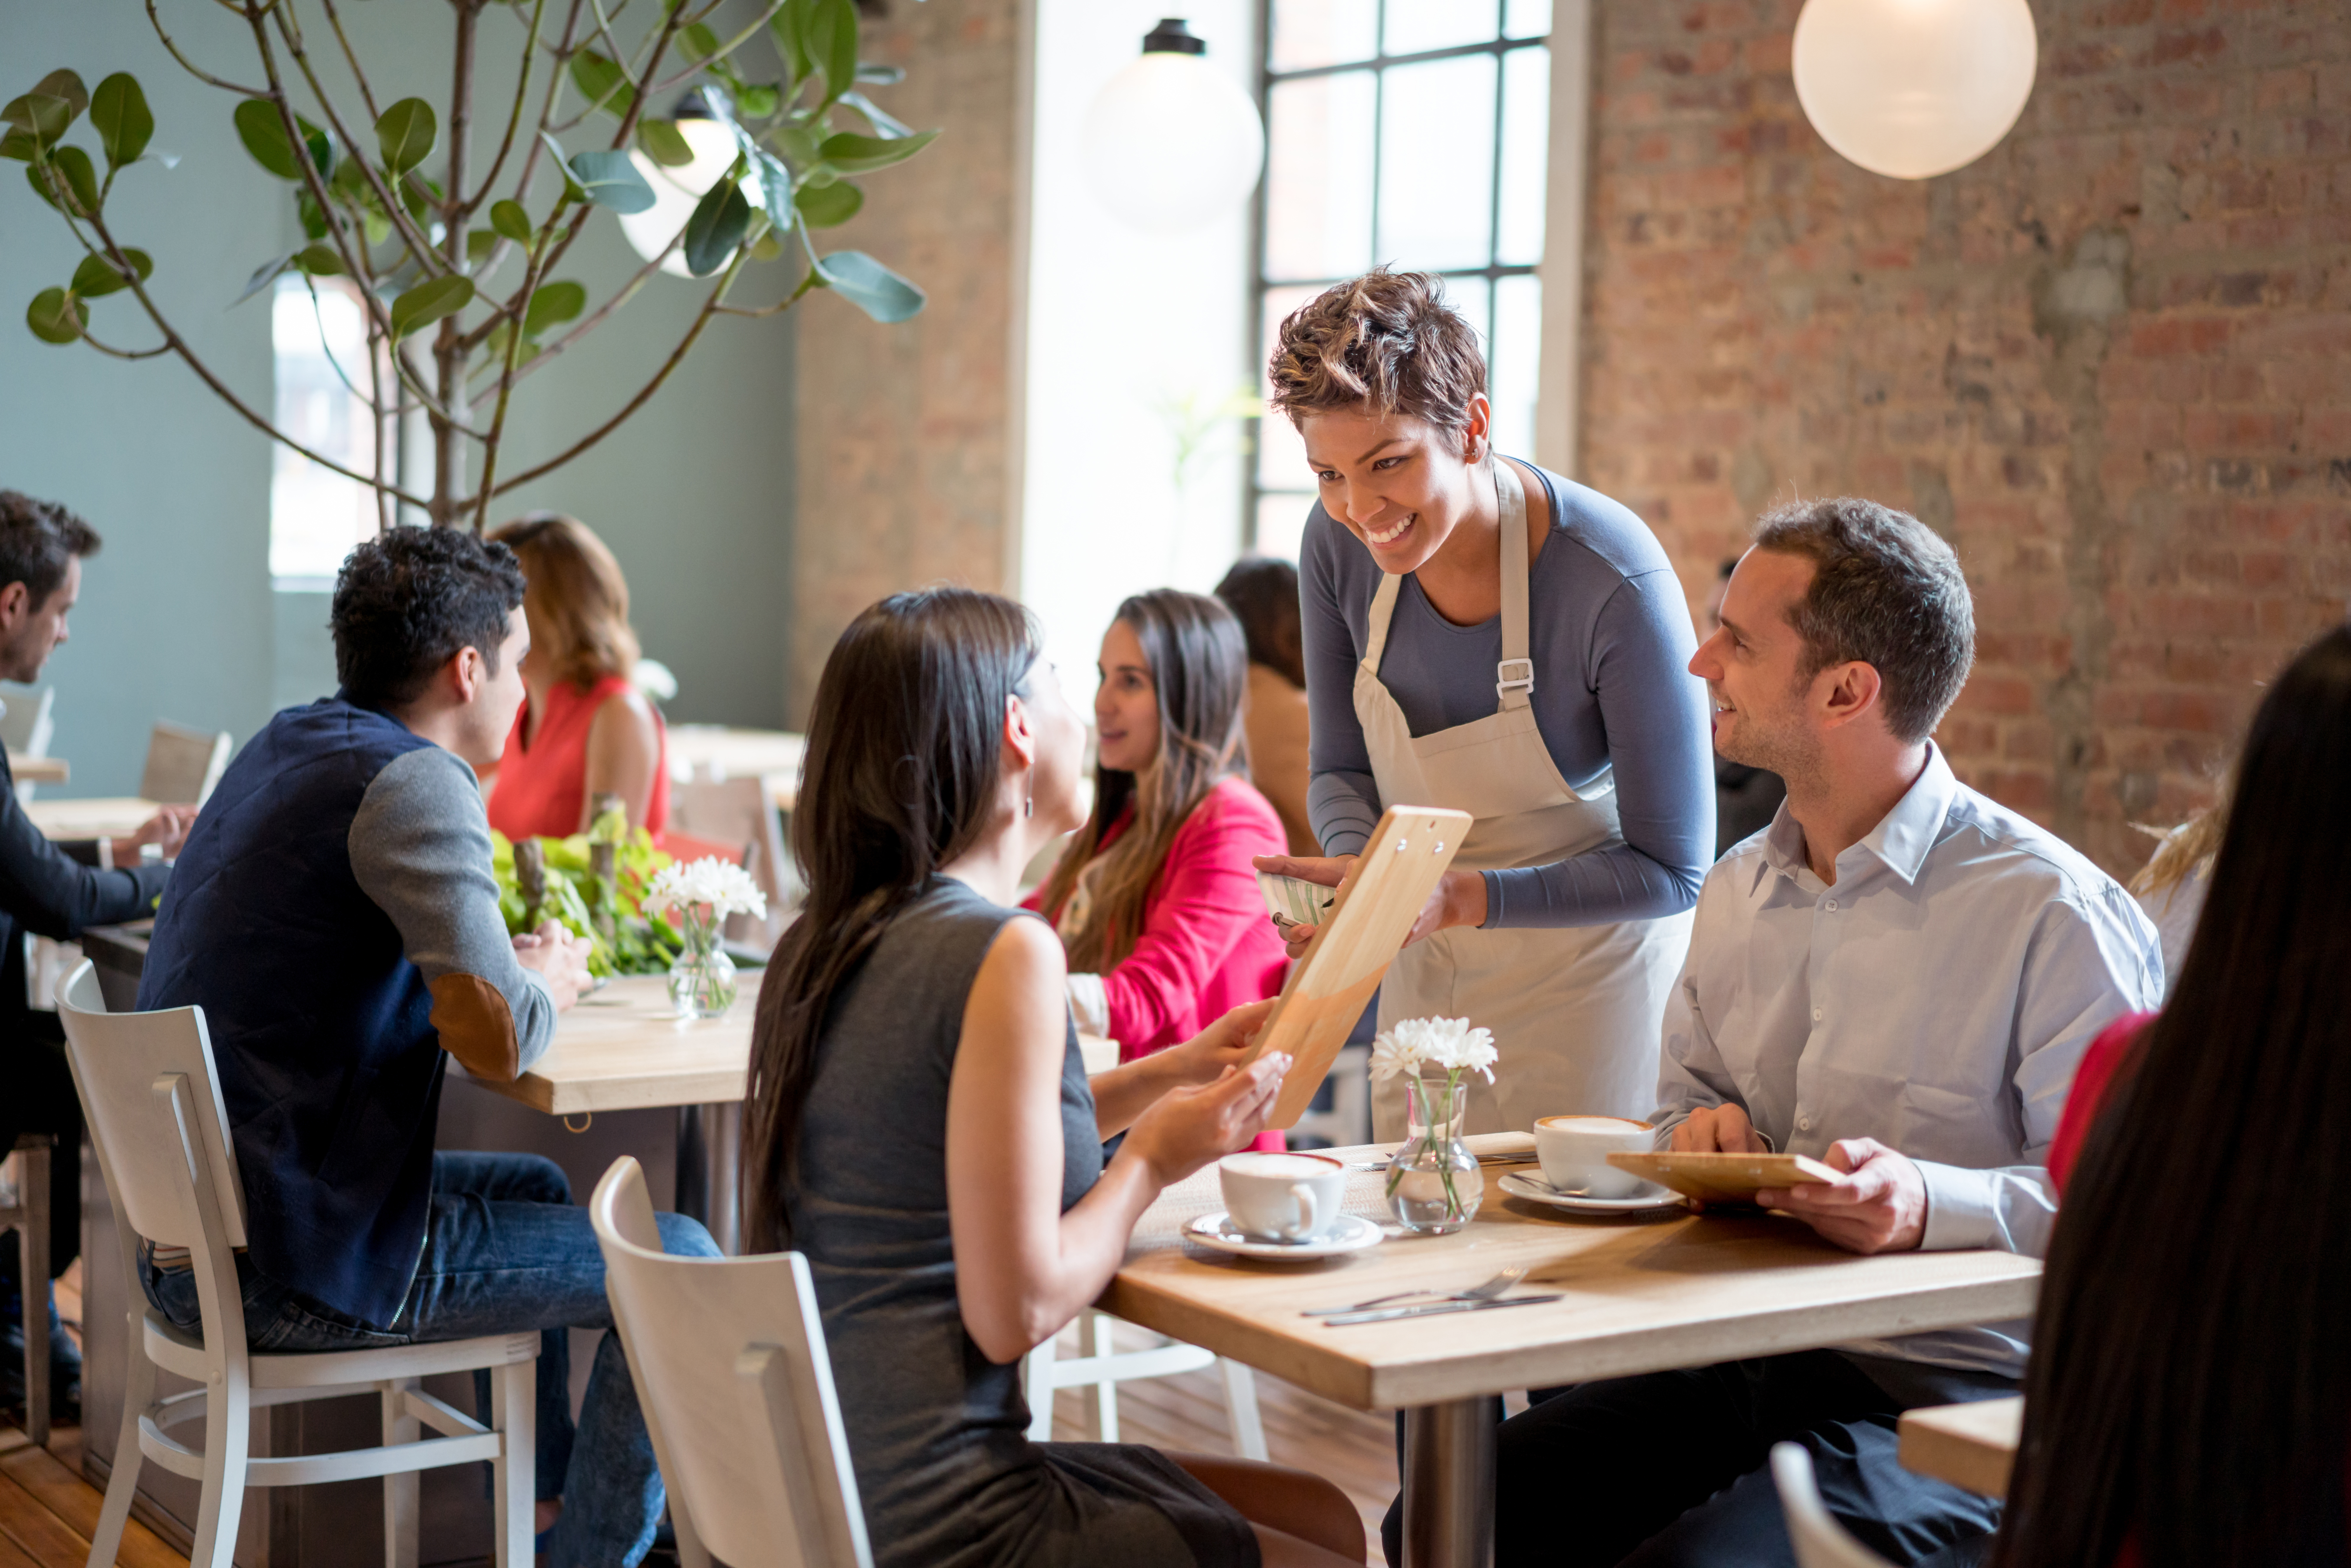 What Percentage Should a Restaurant Spend on Payroll